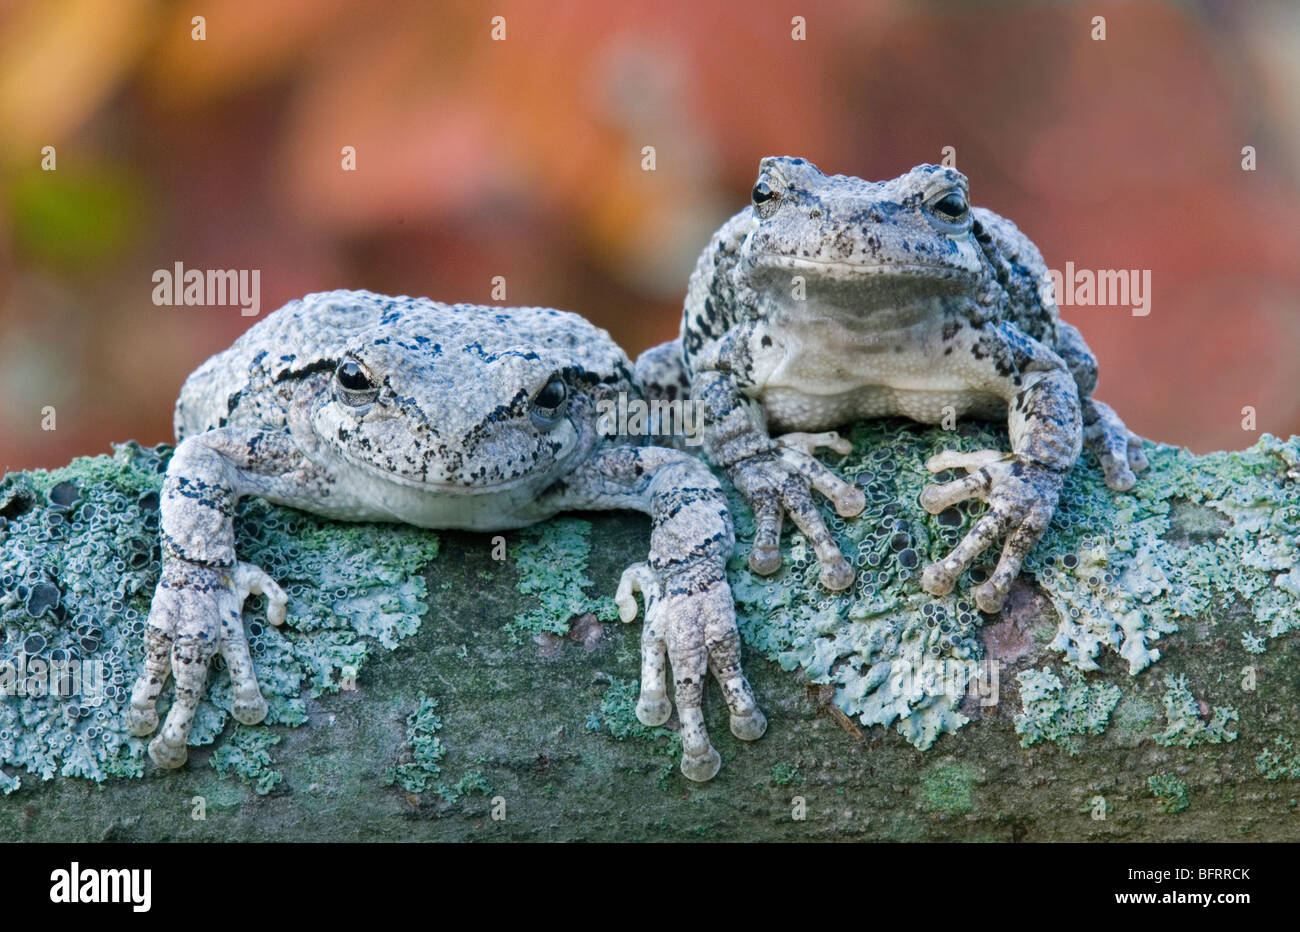 Pair of Gray Tree frogs Hyla versicolor on lichen-covered branch of tree Eastern North America, by Skip Moody/Dembinsky - Stock Image